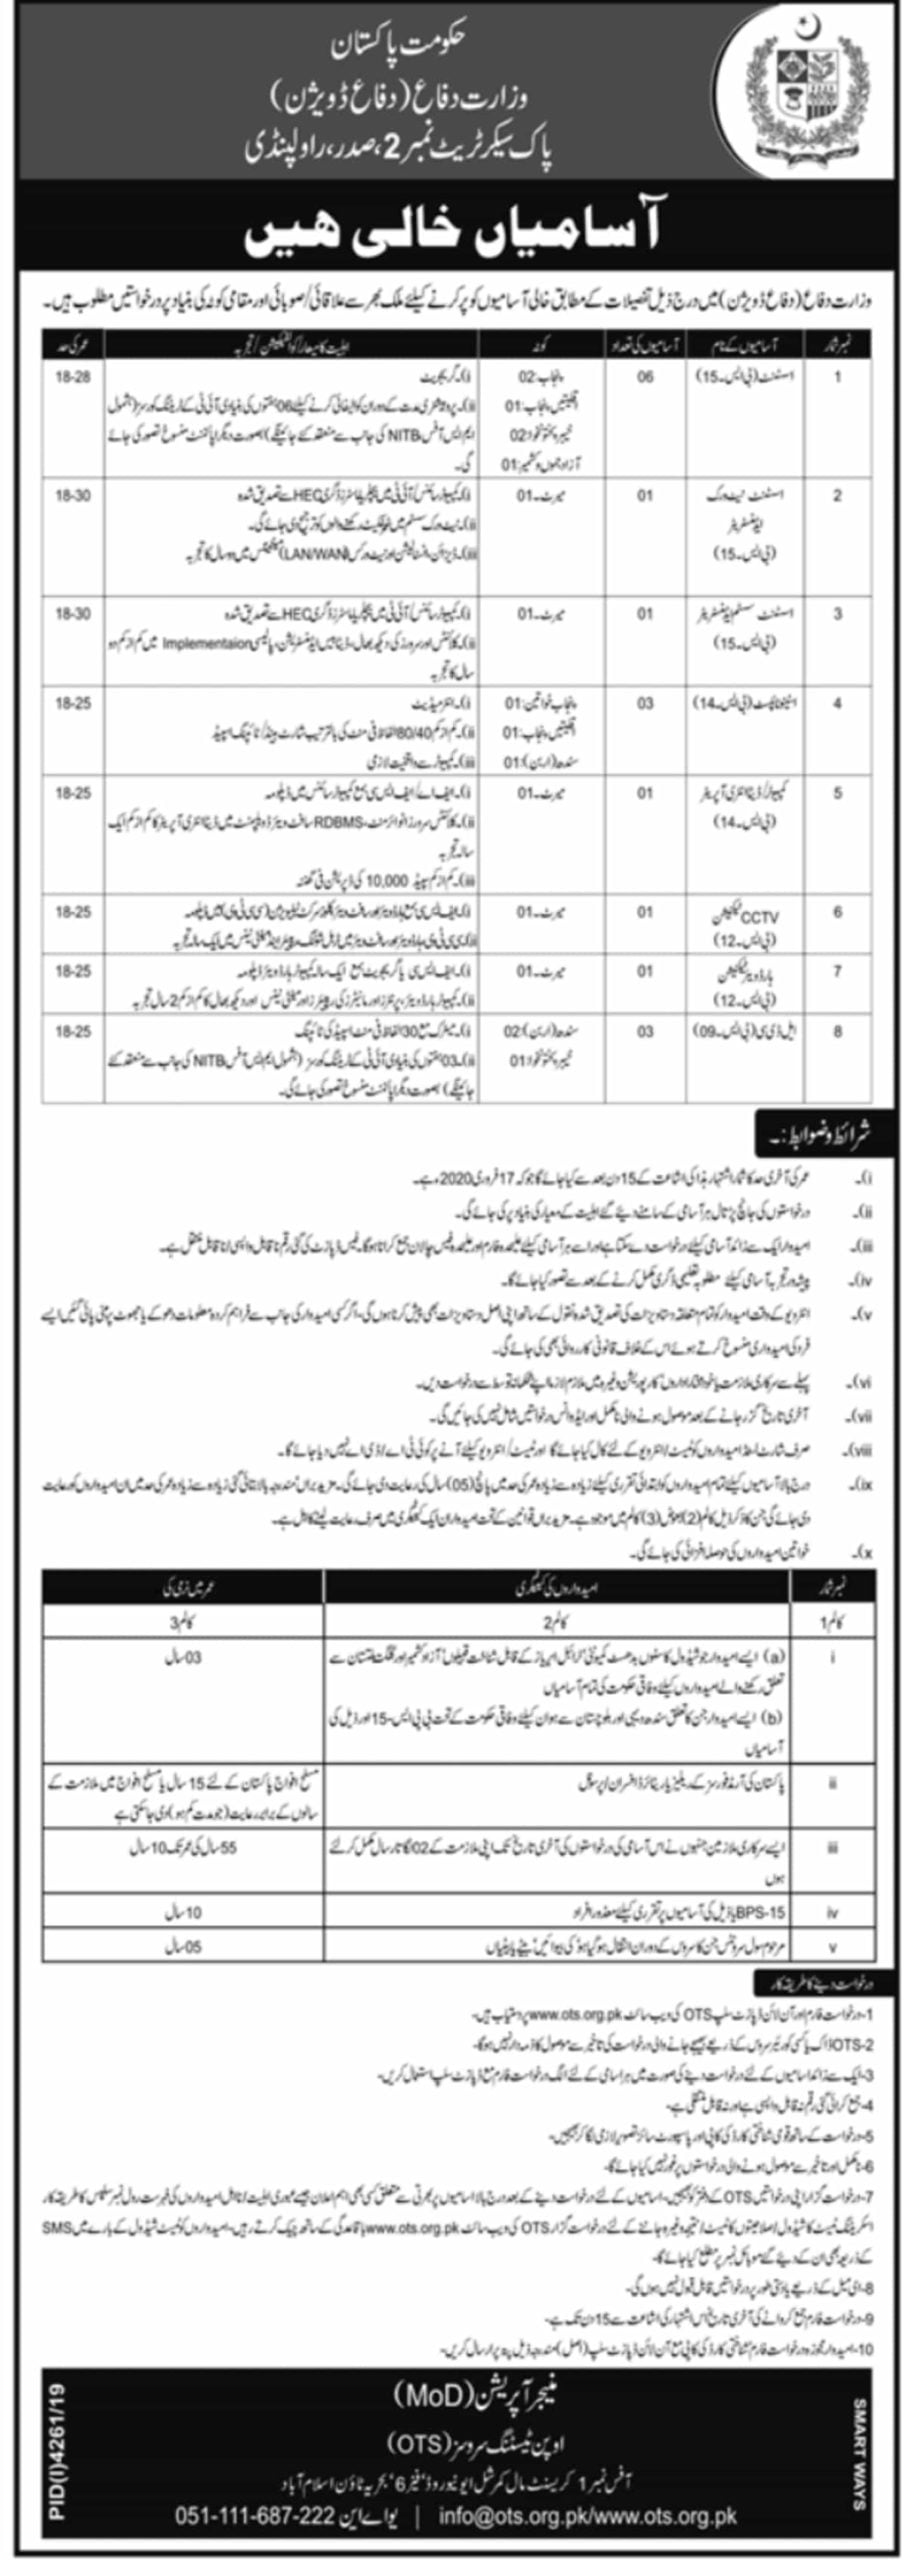 Ministry of Defence MOD Jobs February 2020 OTS Apply Online Latest